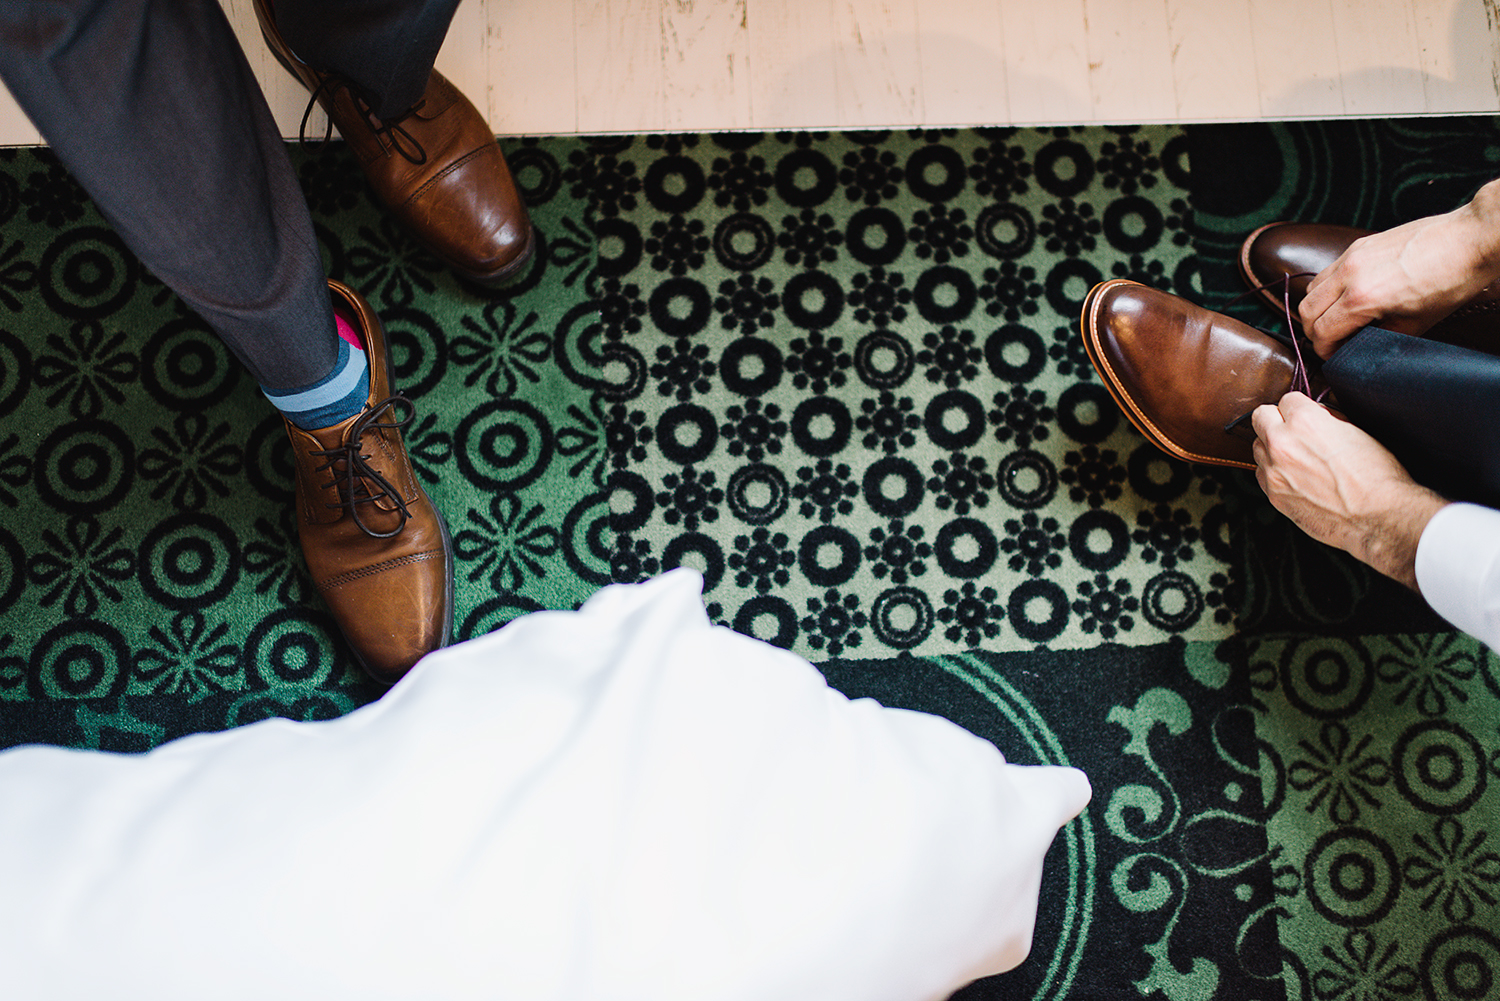 Prince-Edward-County-Drake-Hotel-Elopement-Ryanne-Hollies-Groom-Getting-Ready-tying-shoes.jpg